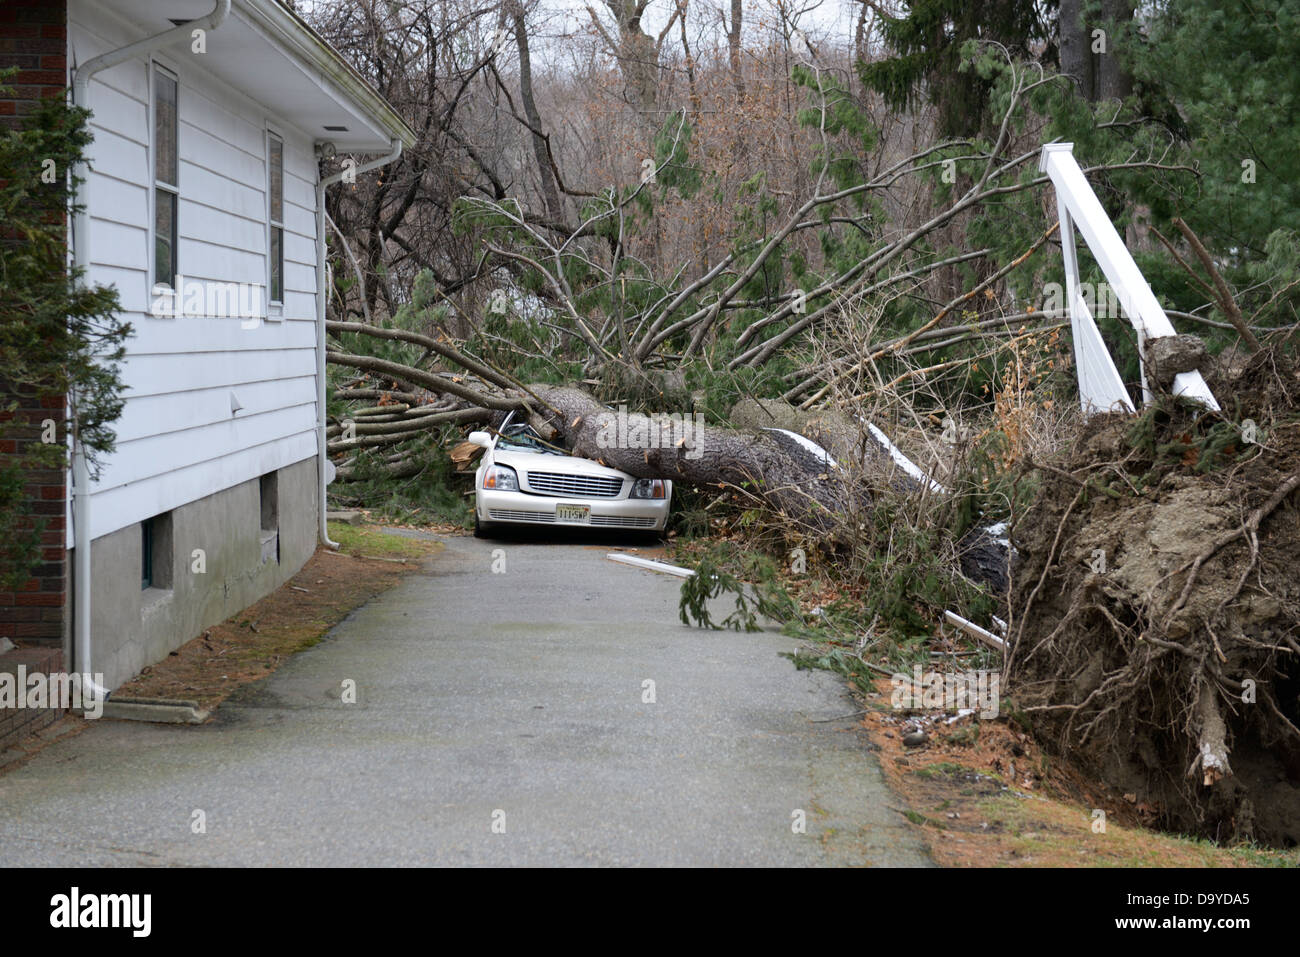 Car crushed by a tree felled by Hurricane Sandy - Stock Image